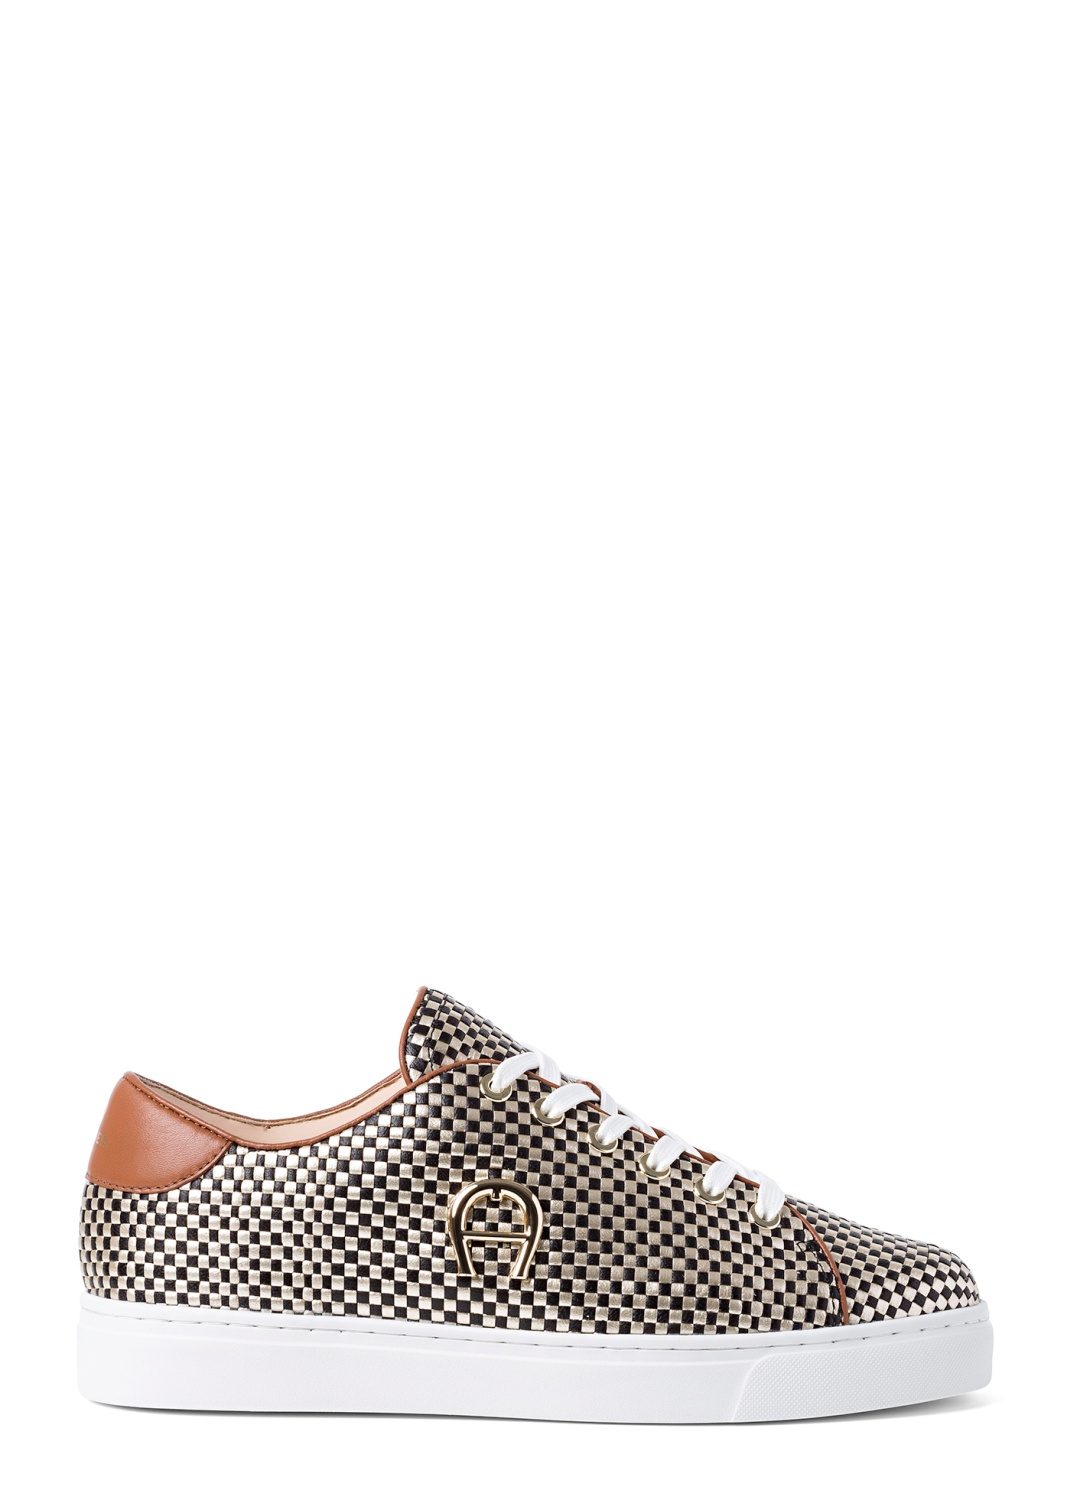 11_Bicolor Woven Sneaker image number 0